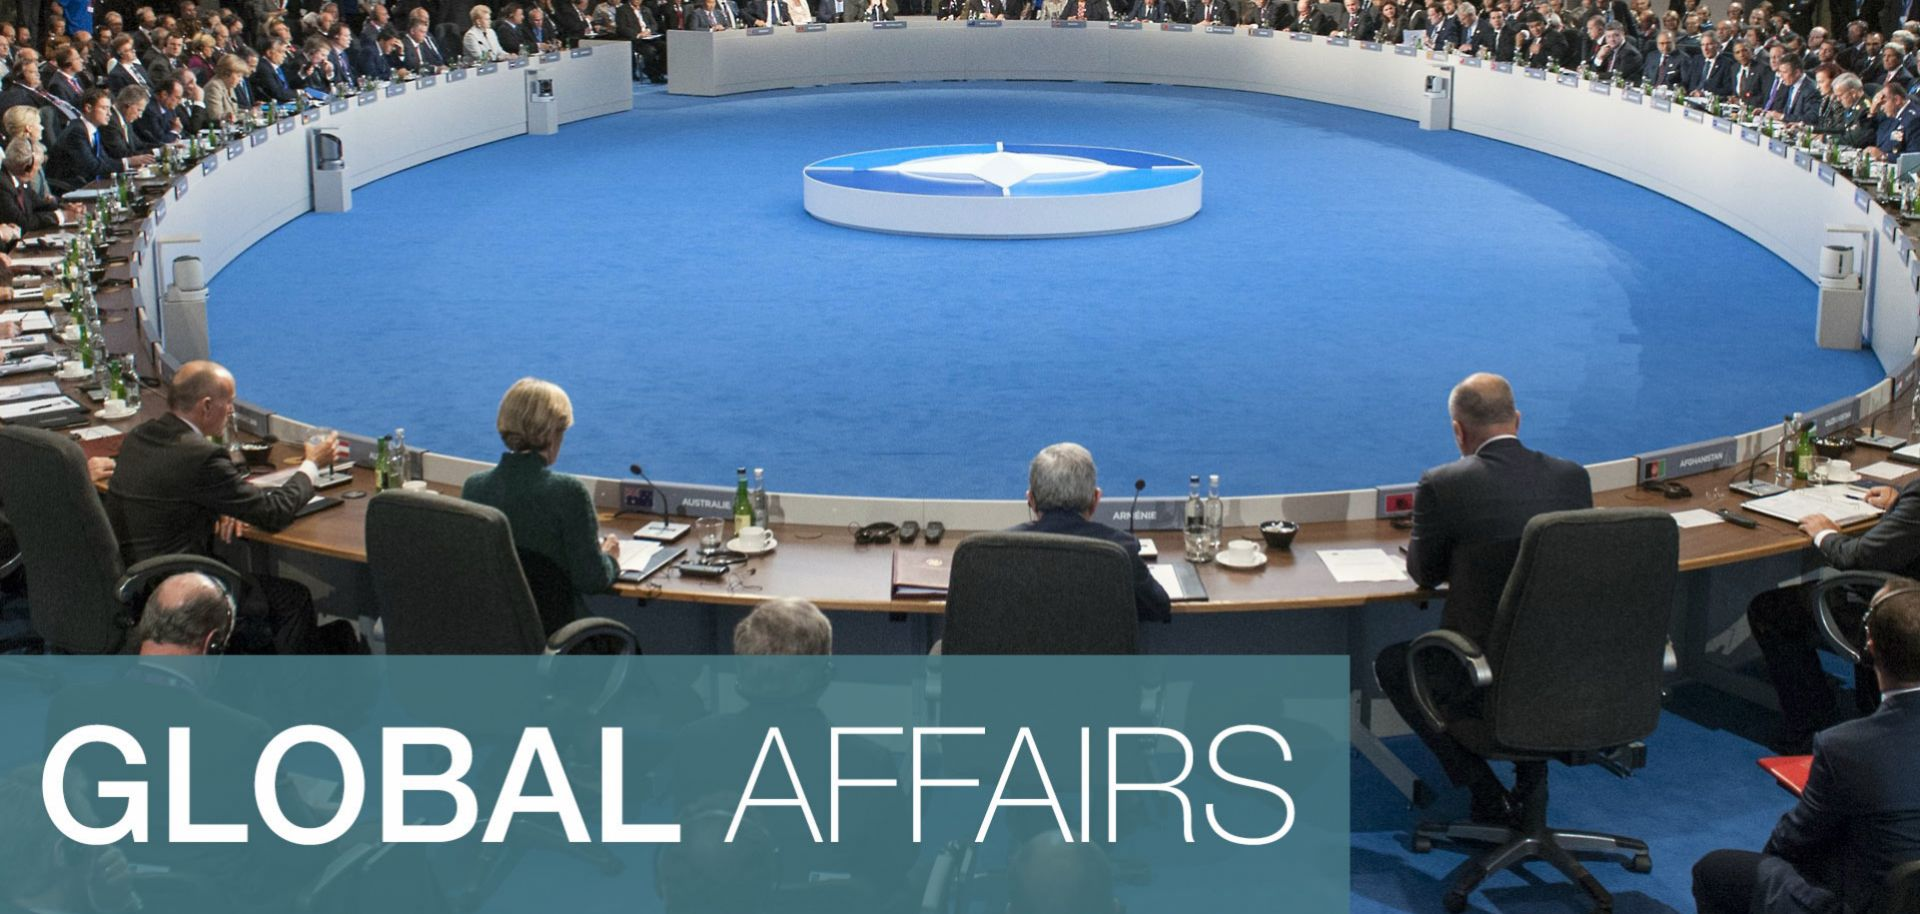 A meeting on Afghanistan during a NATO summit in South Wales.